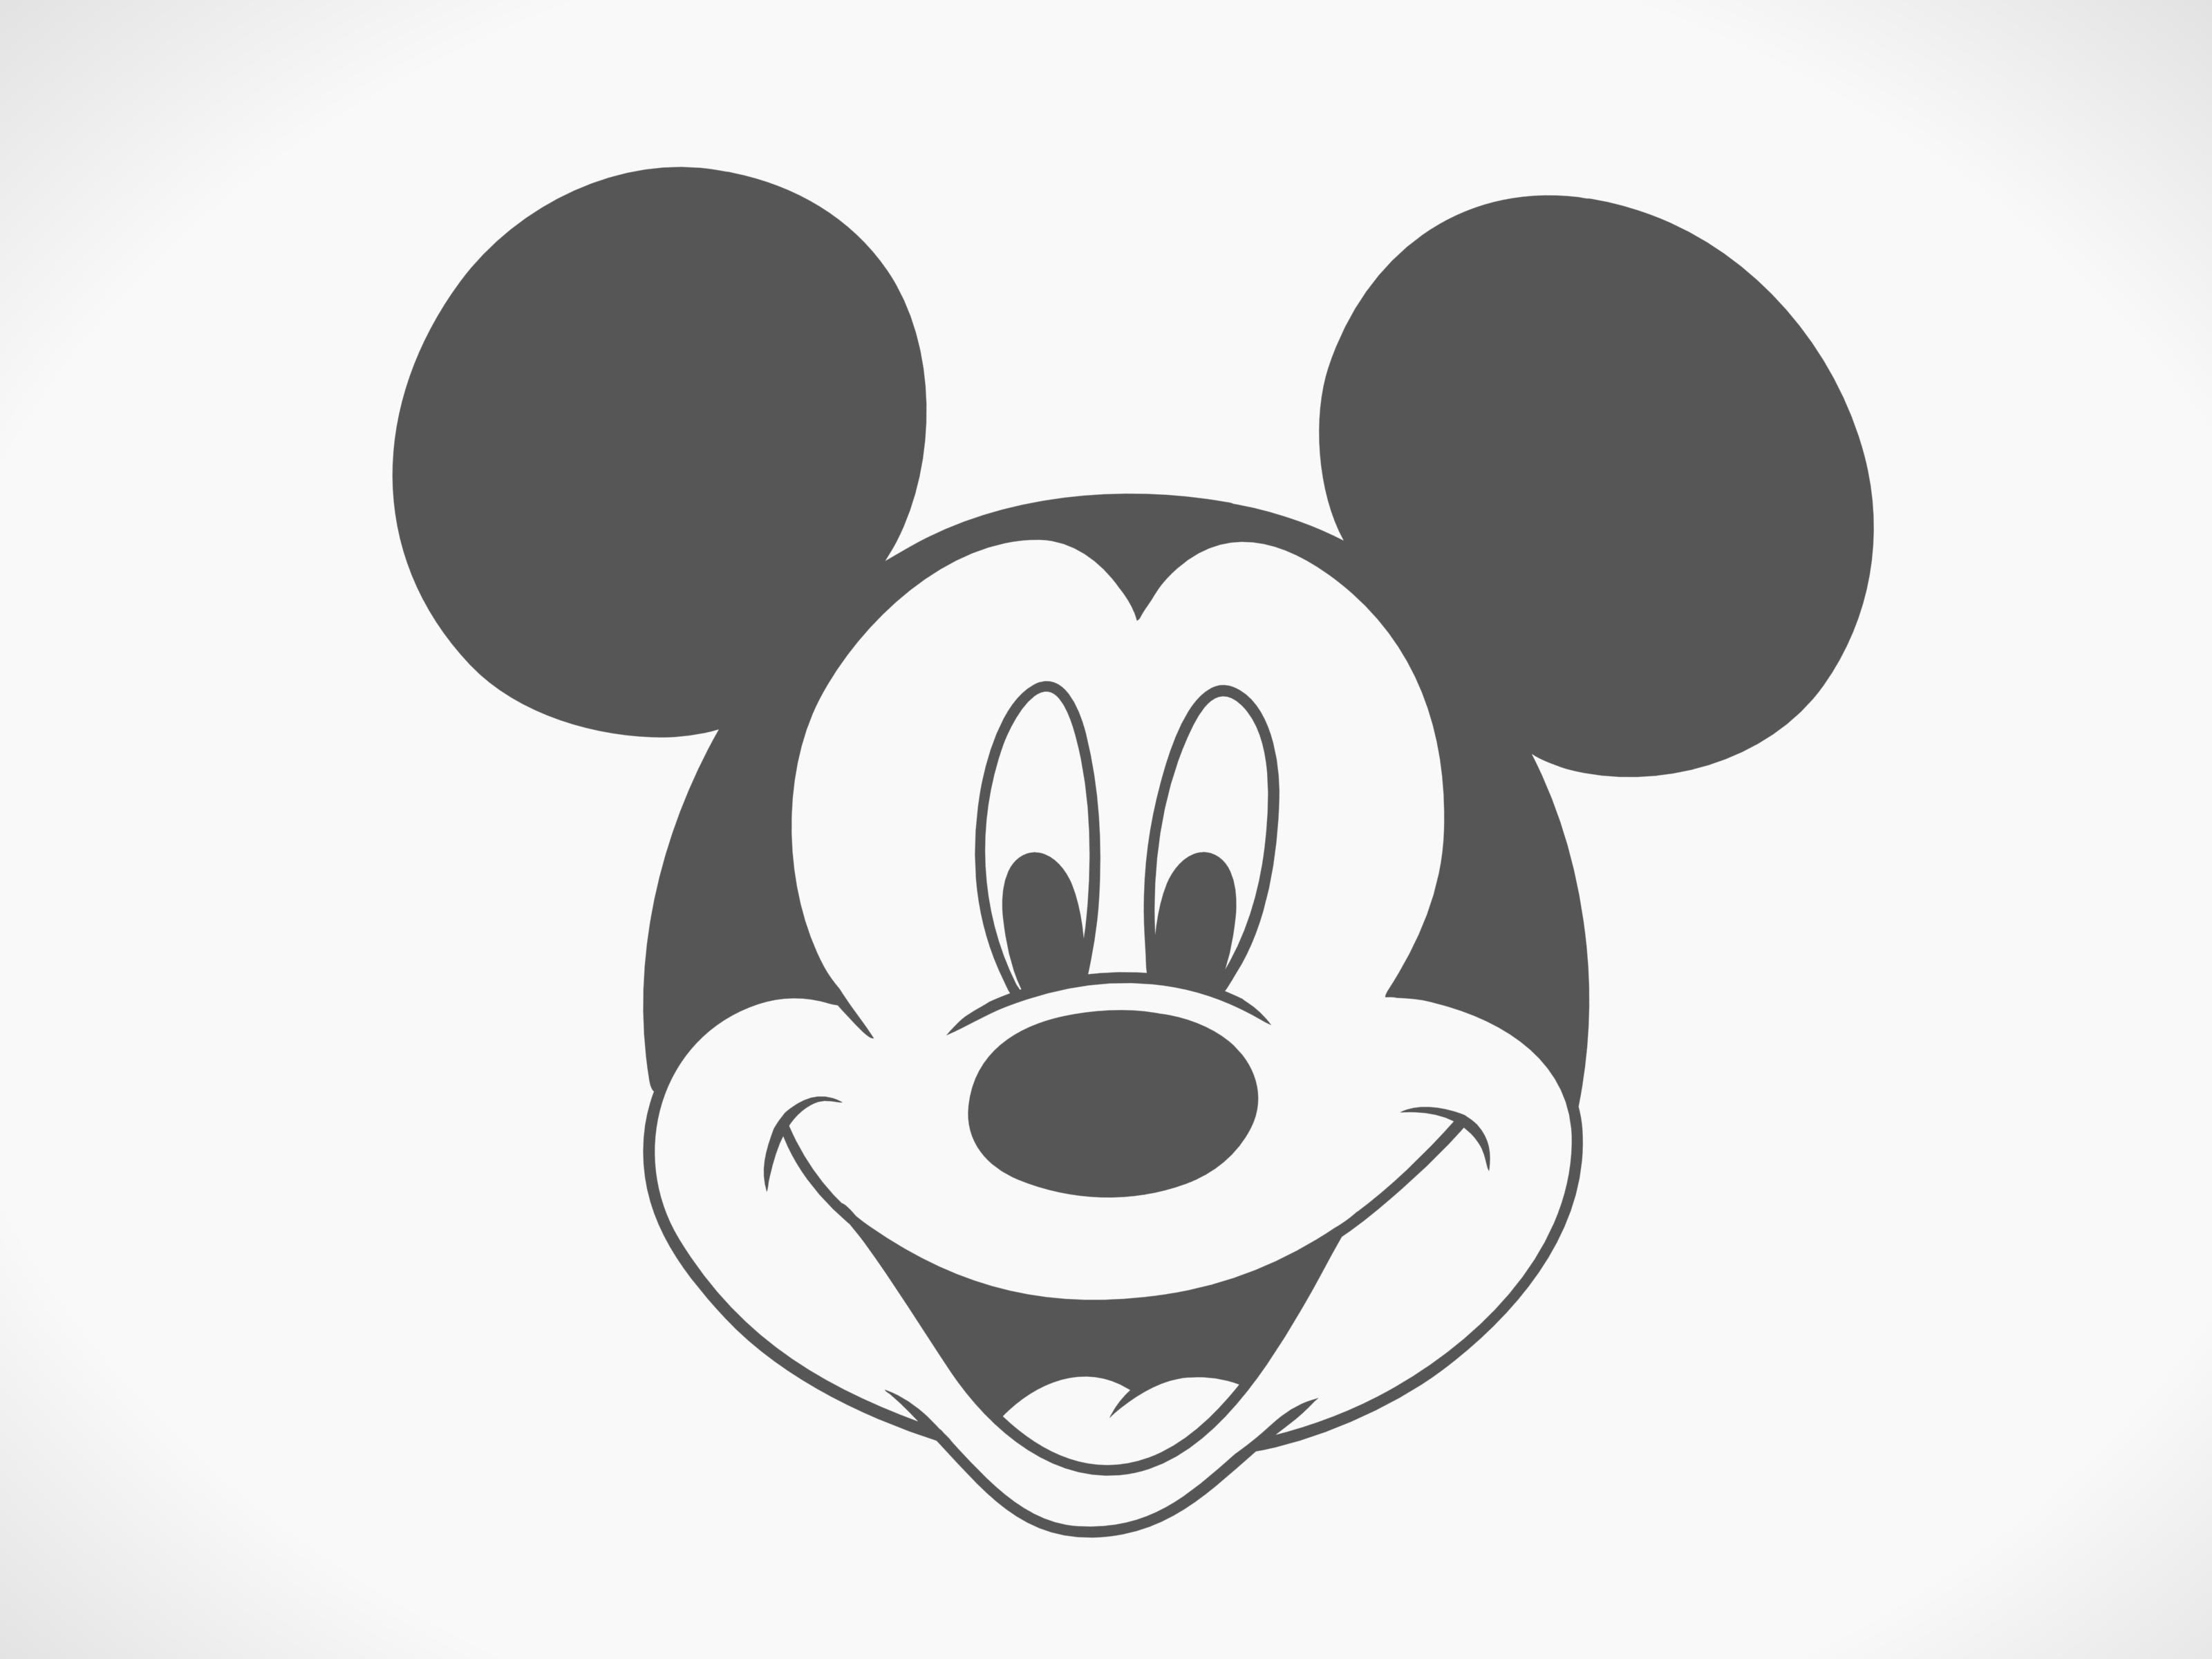 micky mouse drawings mickey mouse drawing easy at paintingvalleycom explore mouse micky drawings